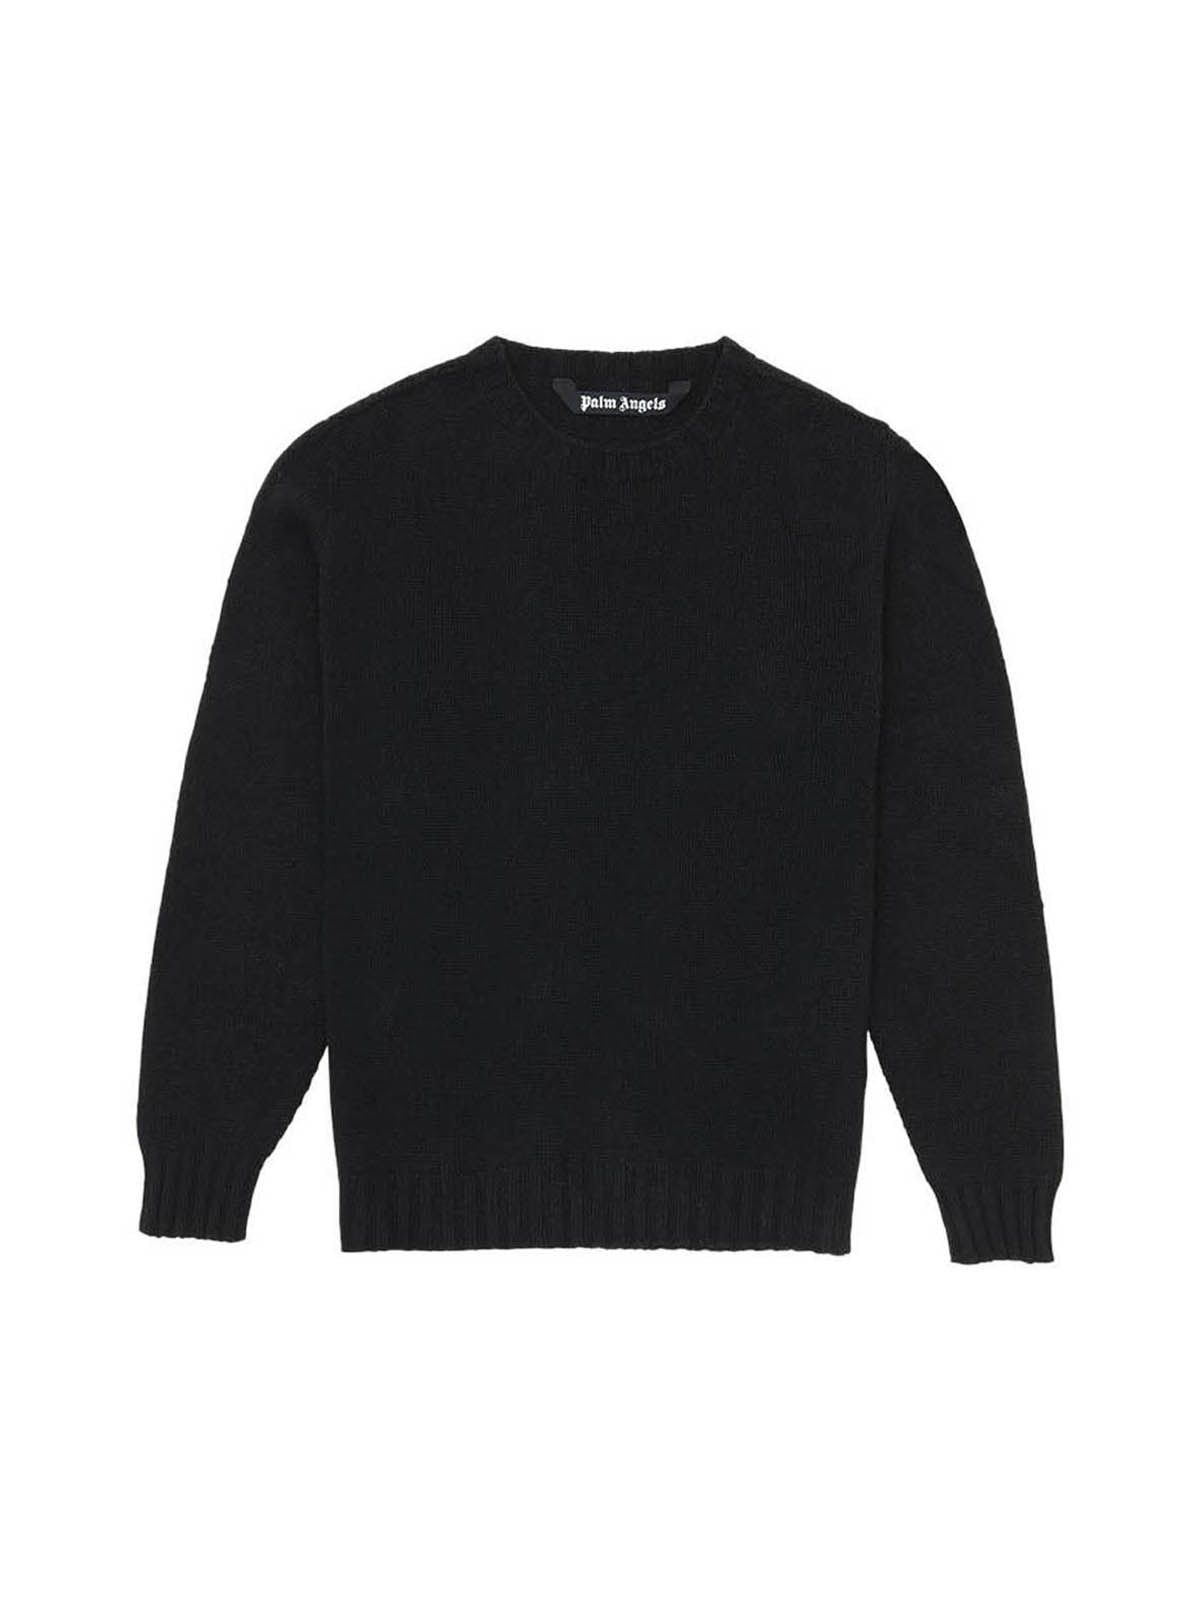 REC LOGO SWEATER